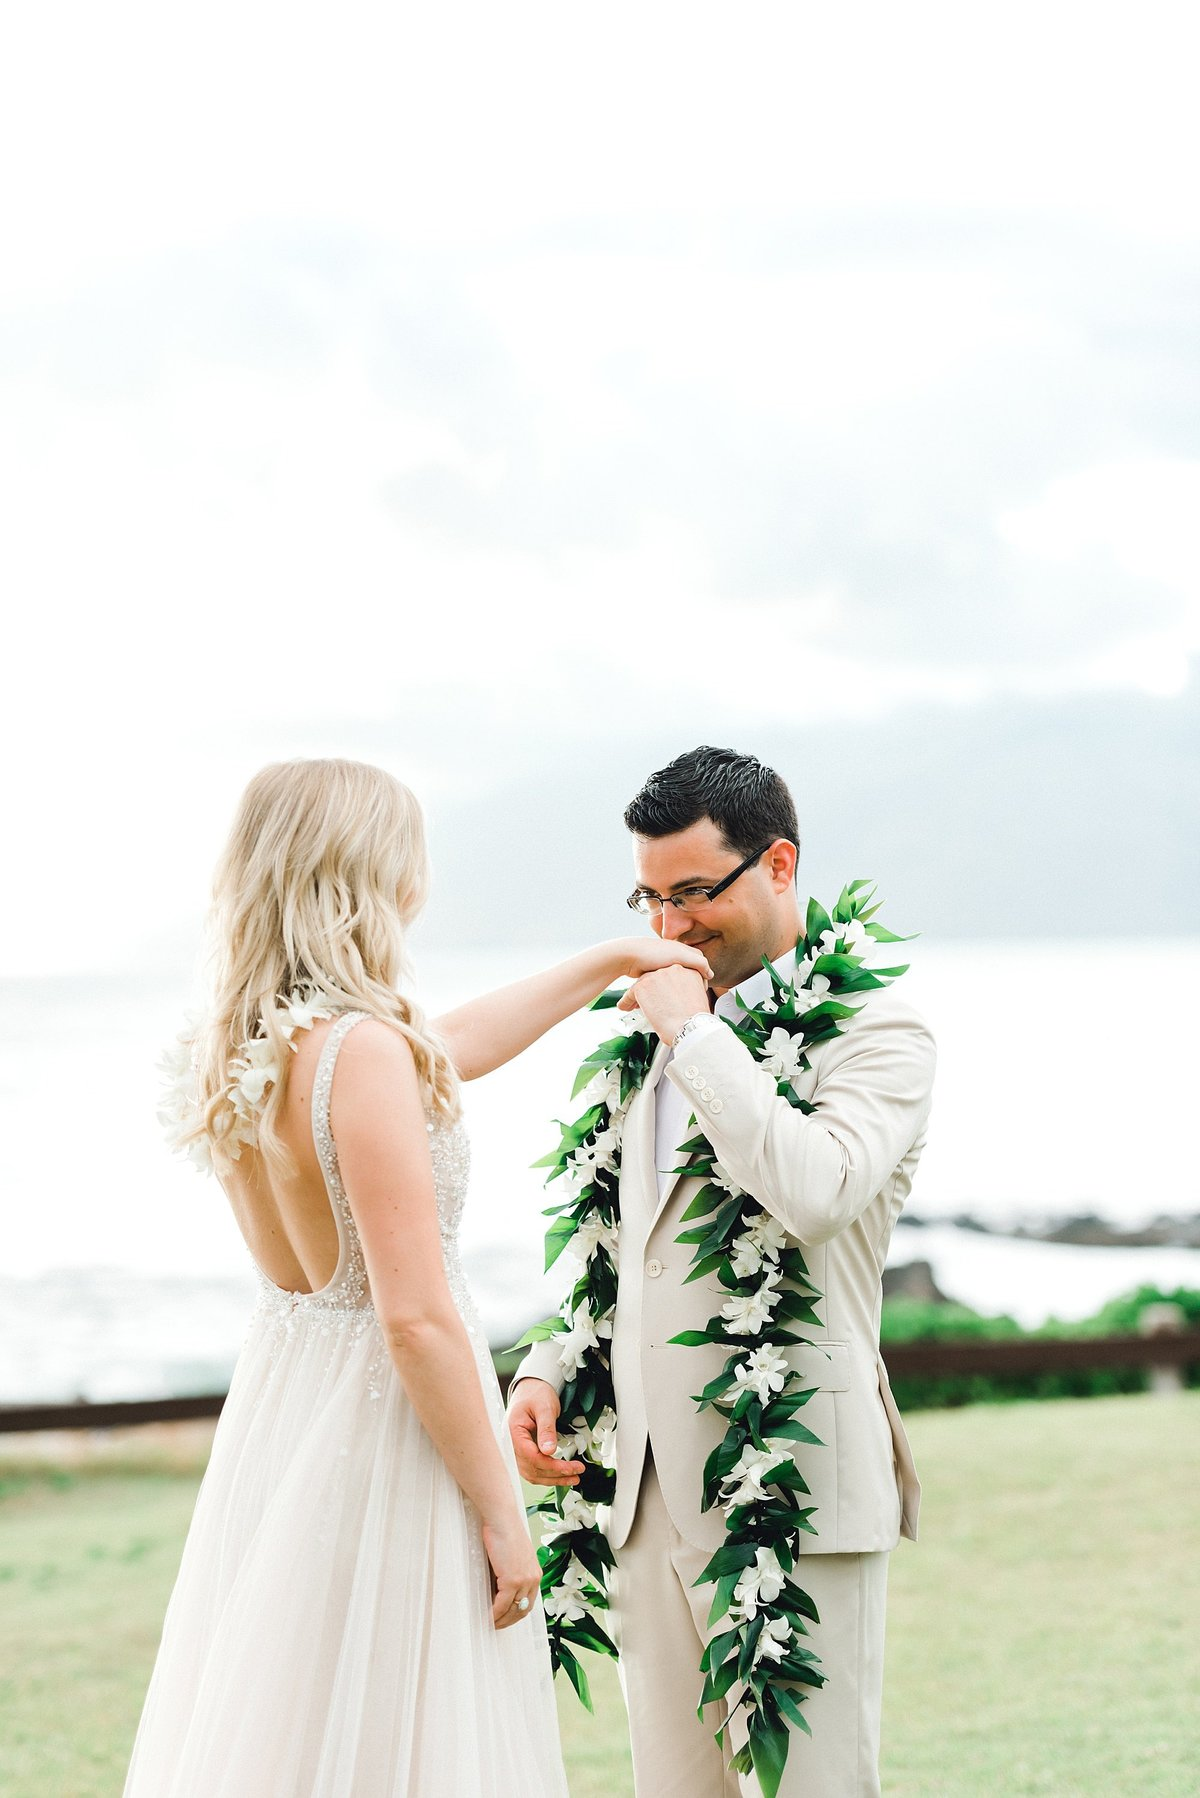 jenny_vargas-photography-maui-wedding-photographer-maui-wedding-photography-maui-photographer-maui-photographers-maui-elopement-photographer-maui-elopement-maui-wedding-maui-engagement-photographer_0959